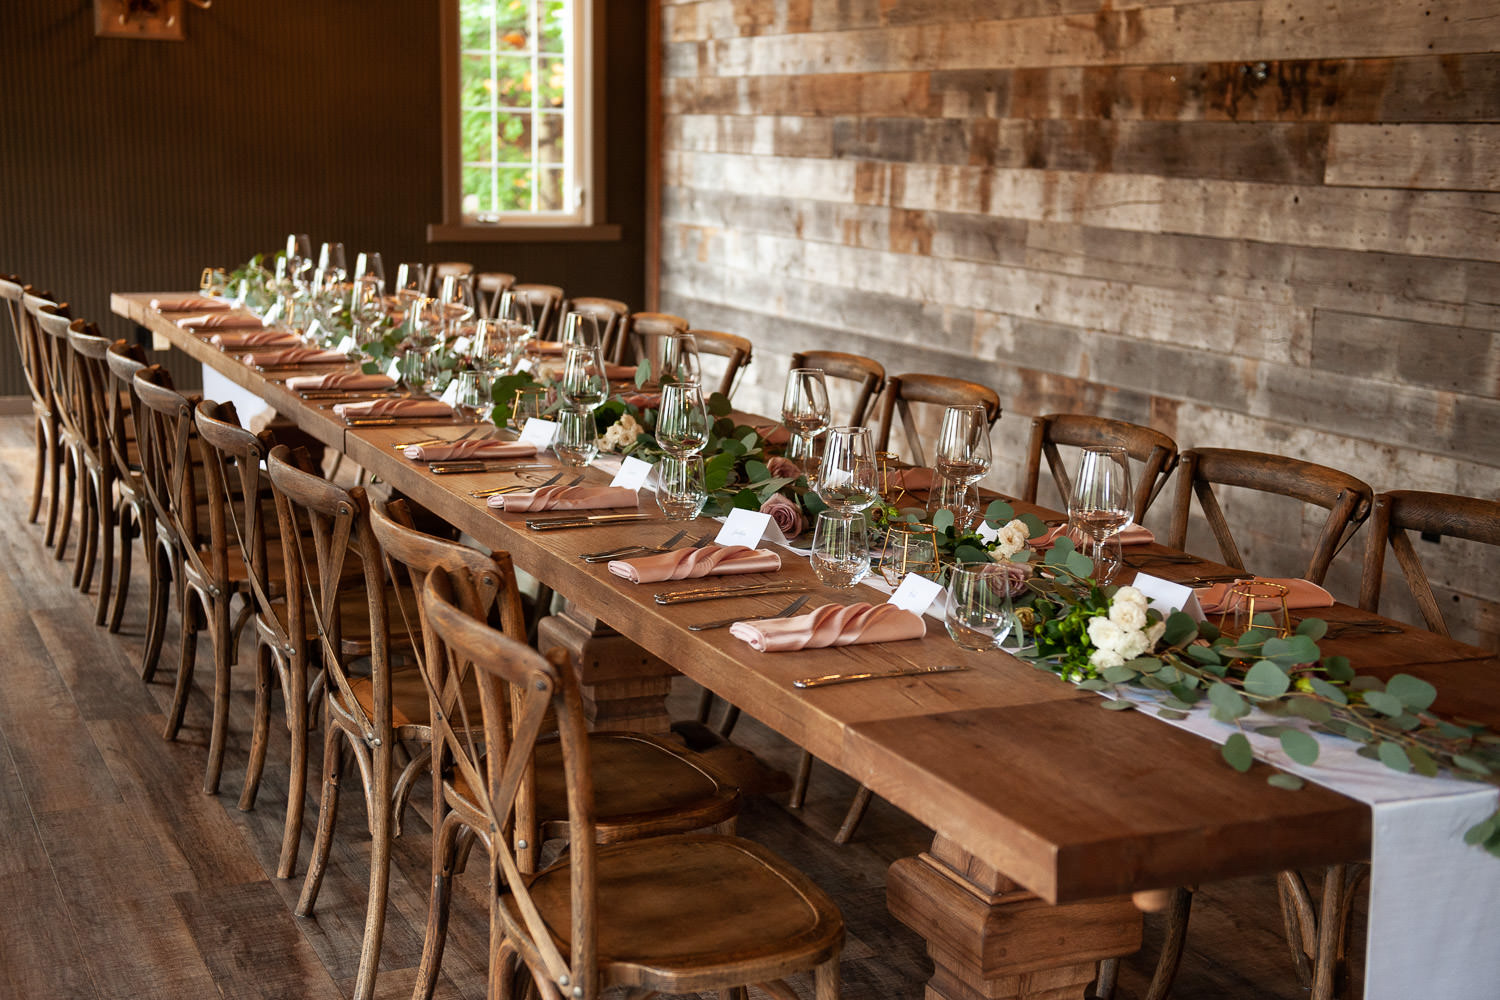 Reception table at a Creekside Villa wedding captured by Tara Whittaker Photography